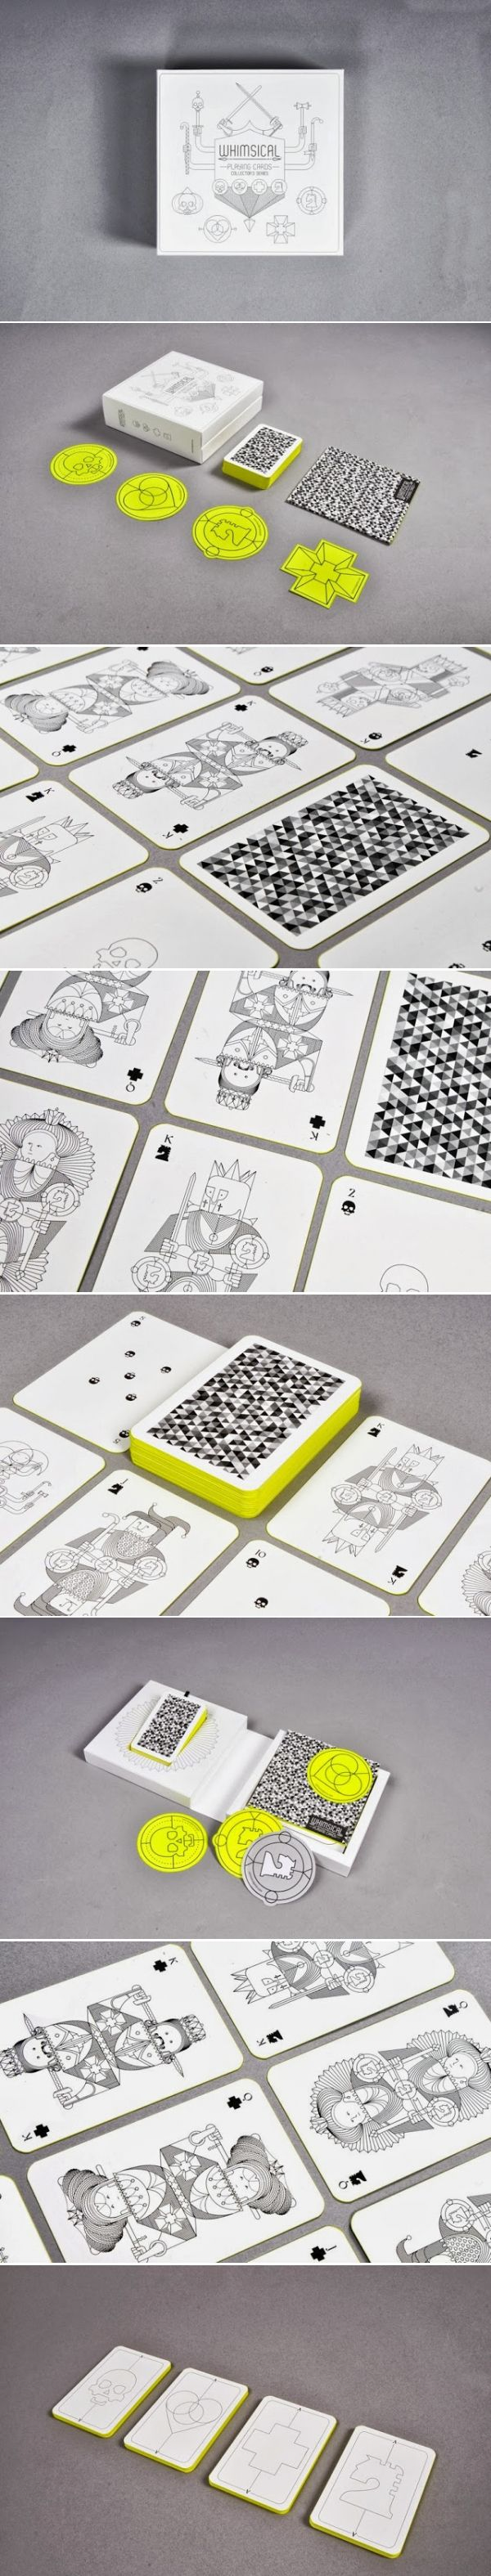 Whimsical playing cards collectors playful design